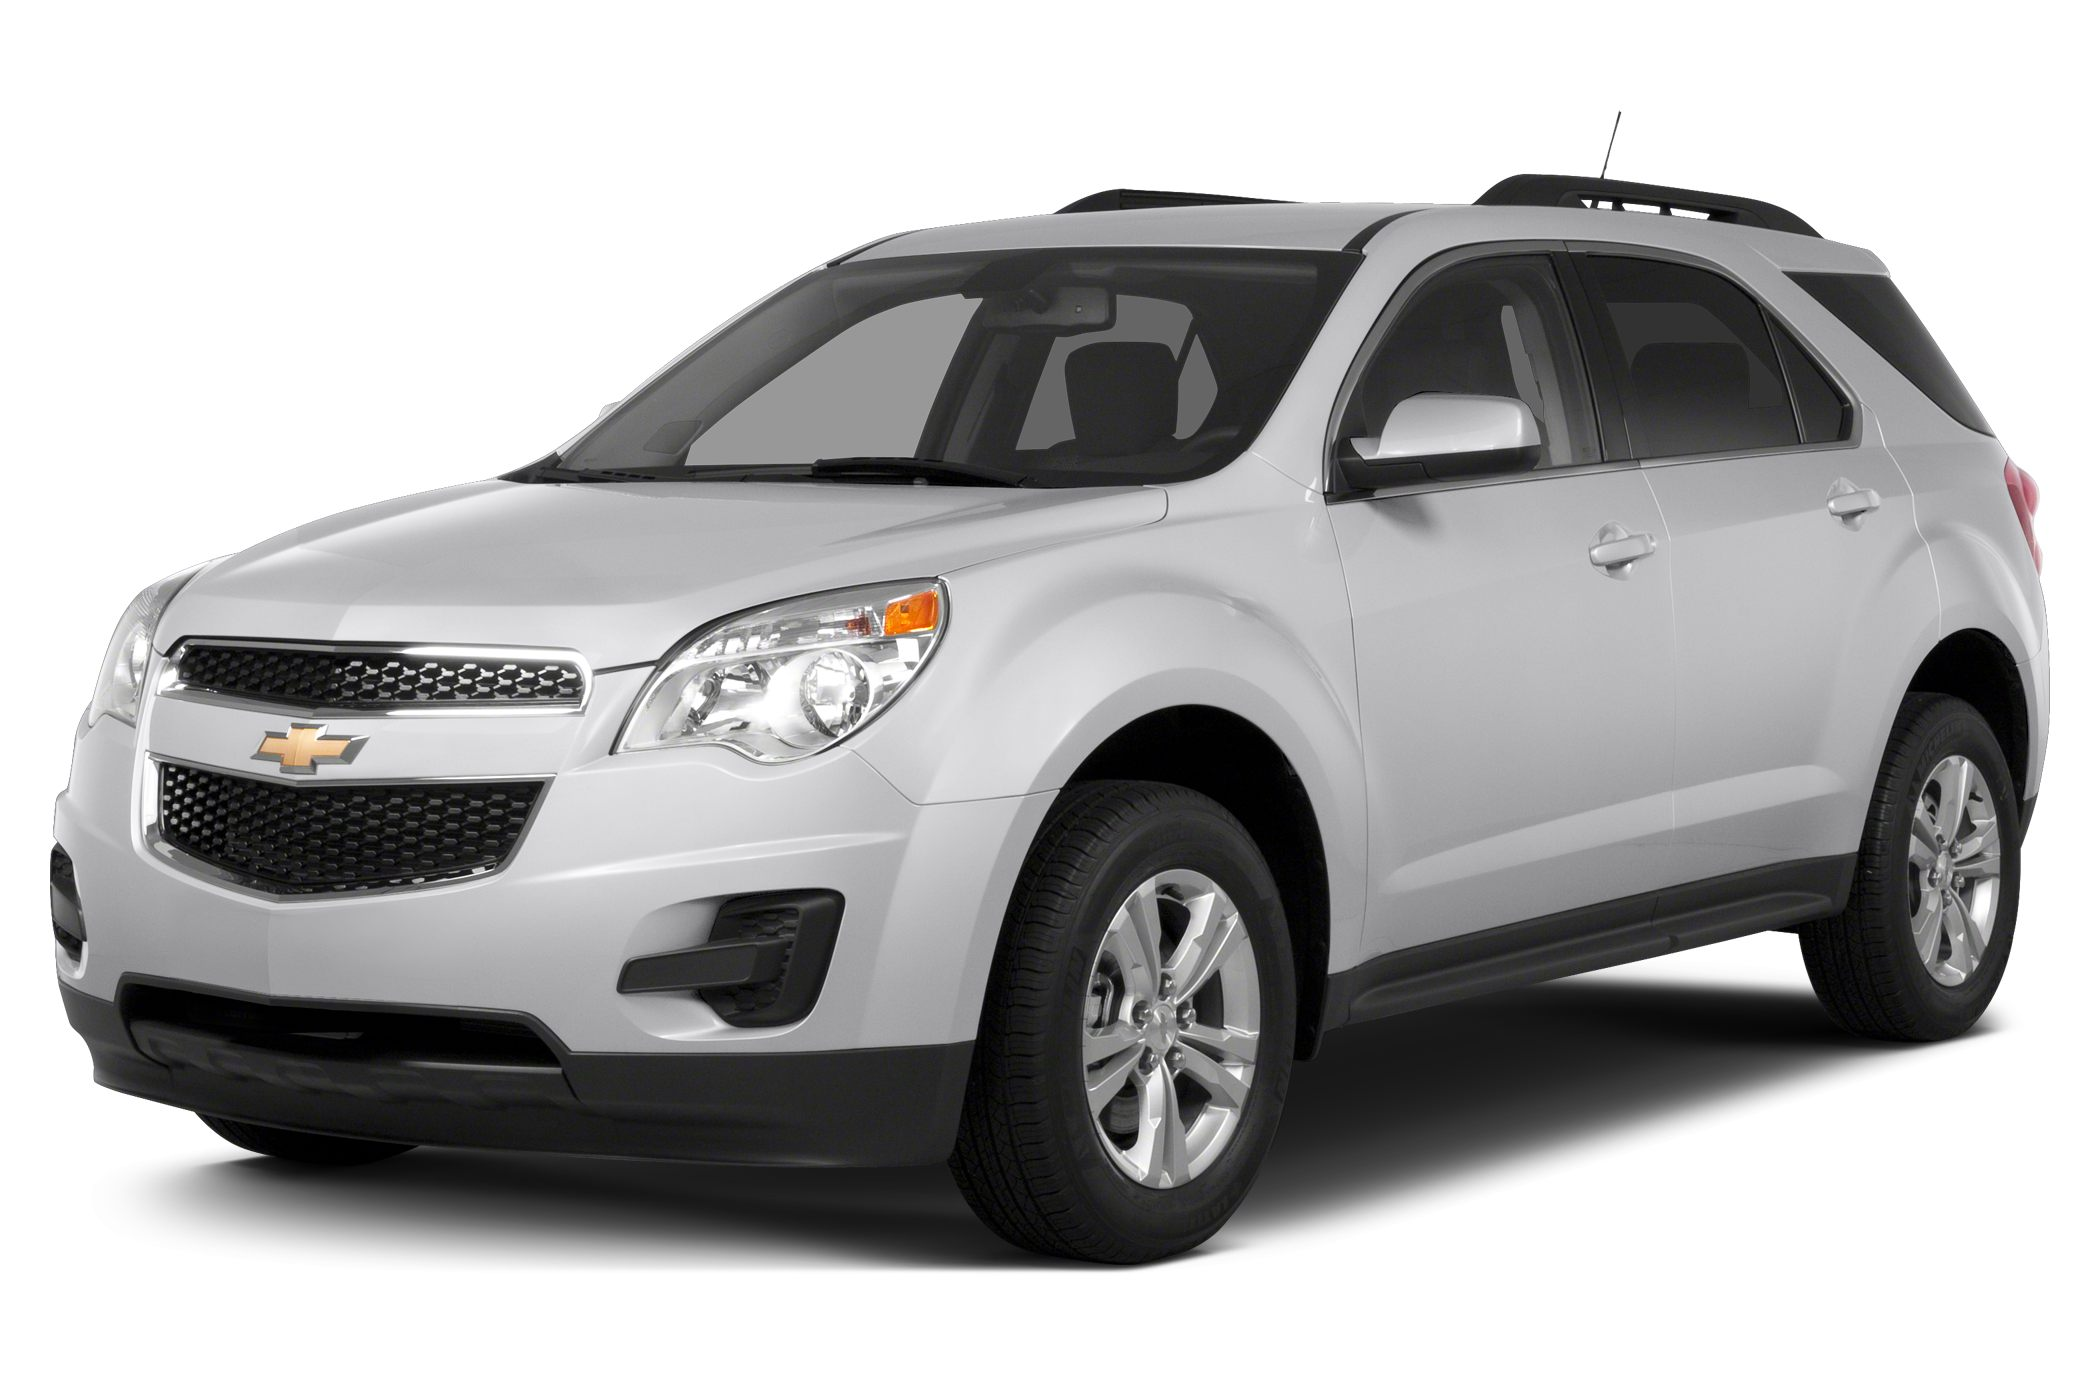 2015 Chevrolet Equinox 1LT SUV for sale in Valdosta for $29,565 with 2 miles